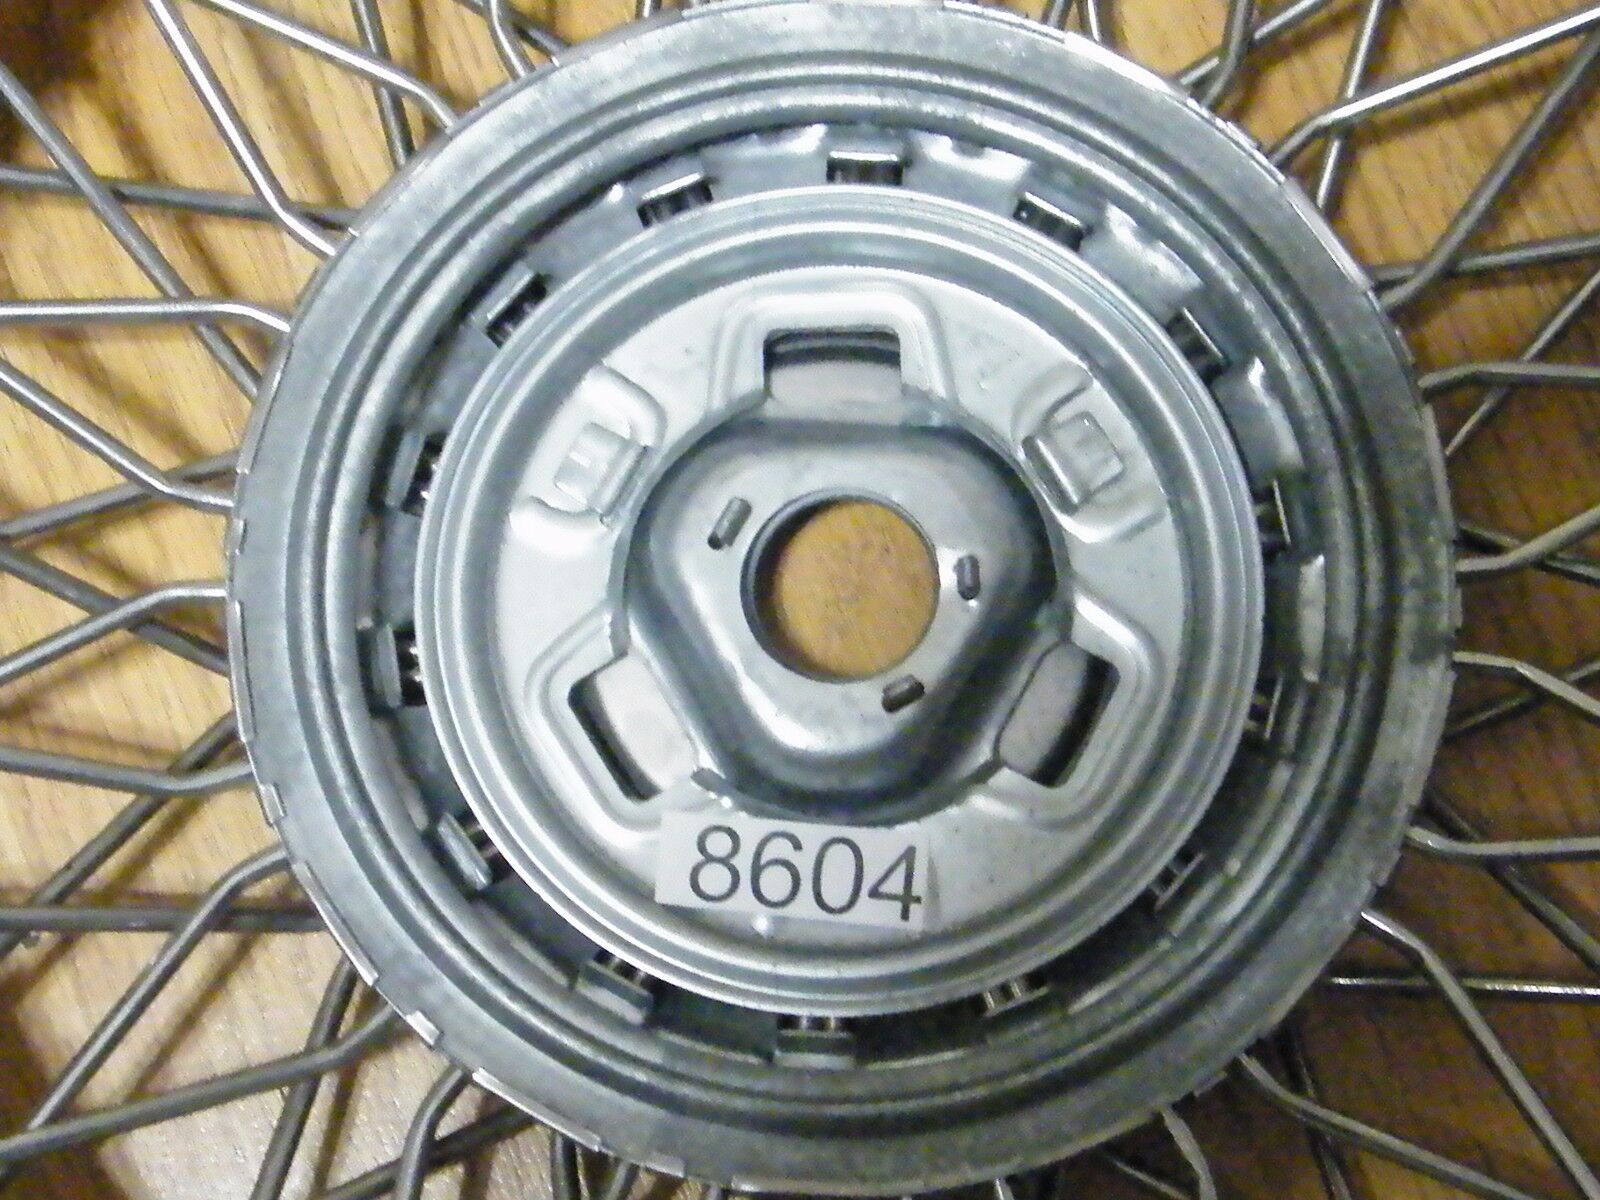 Used 1986 Buick Century Wheels & Hubcaps for Sale